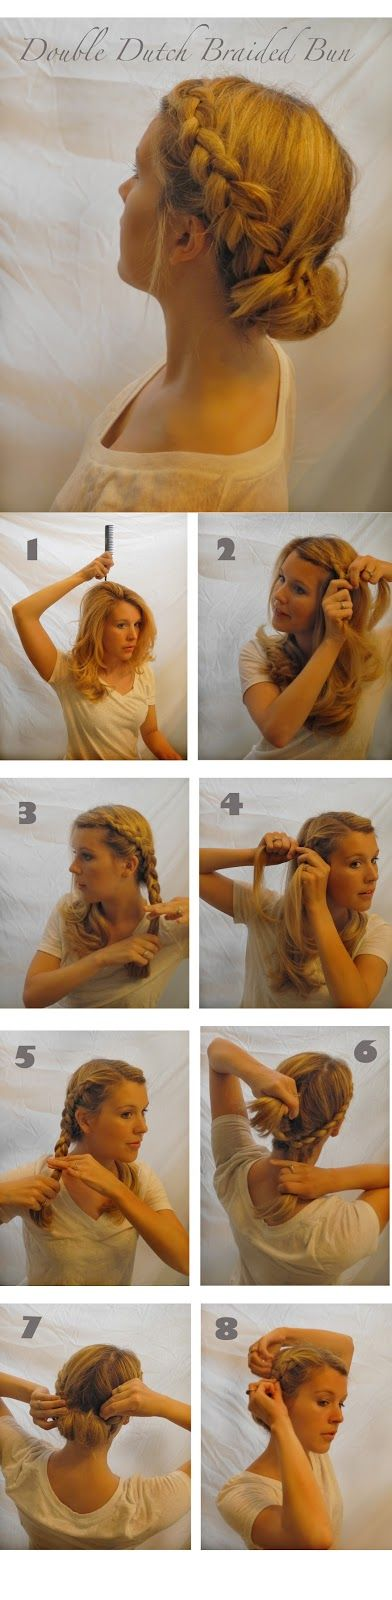 Double Dutch Braided Bun Hair Tutorial